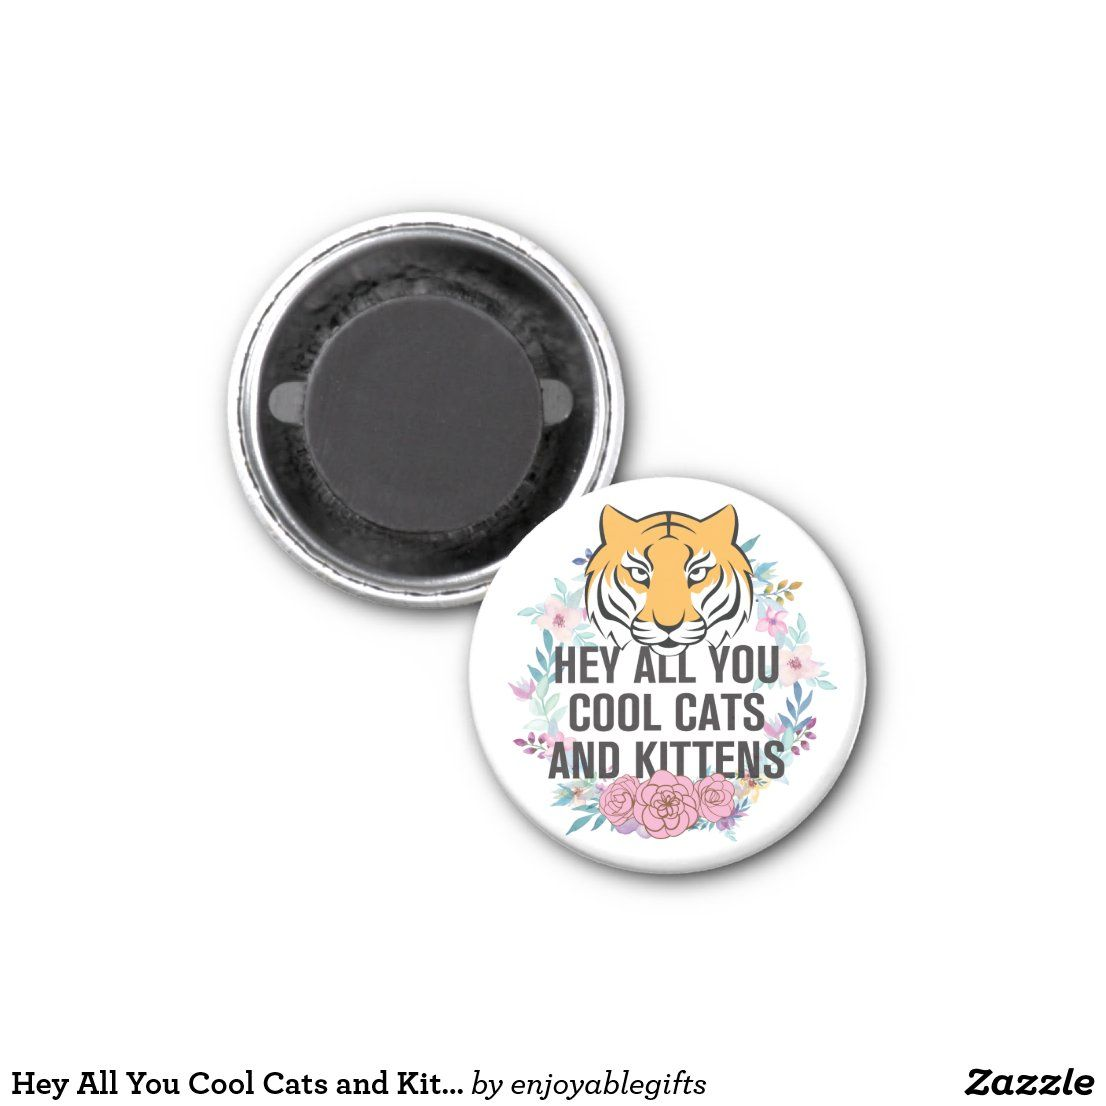 Hey All You Cool Cats And Kittens Tiger King Magnet Zazzle Com In 2020 Cool Cats Cats And Kittens Kittens